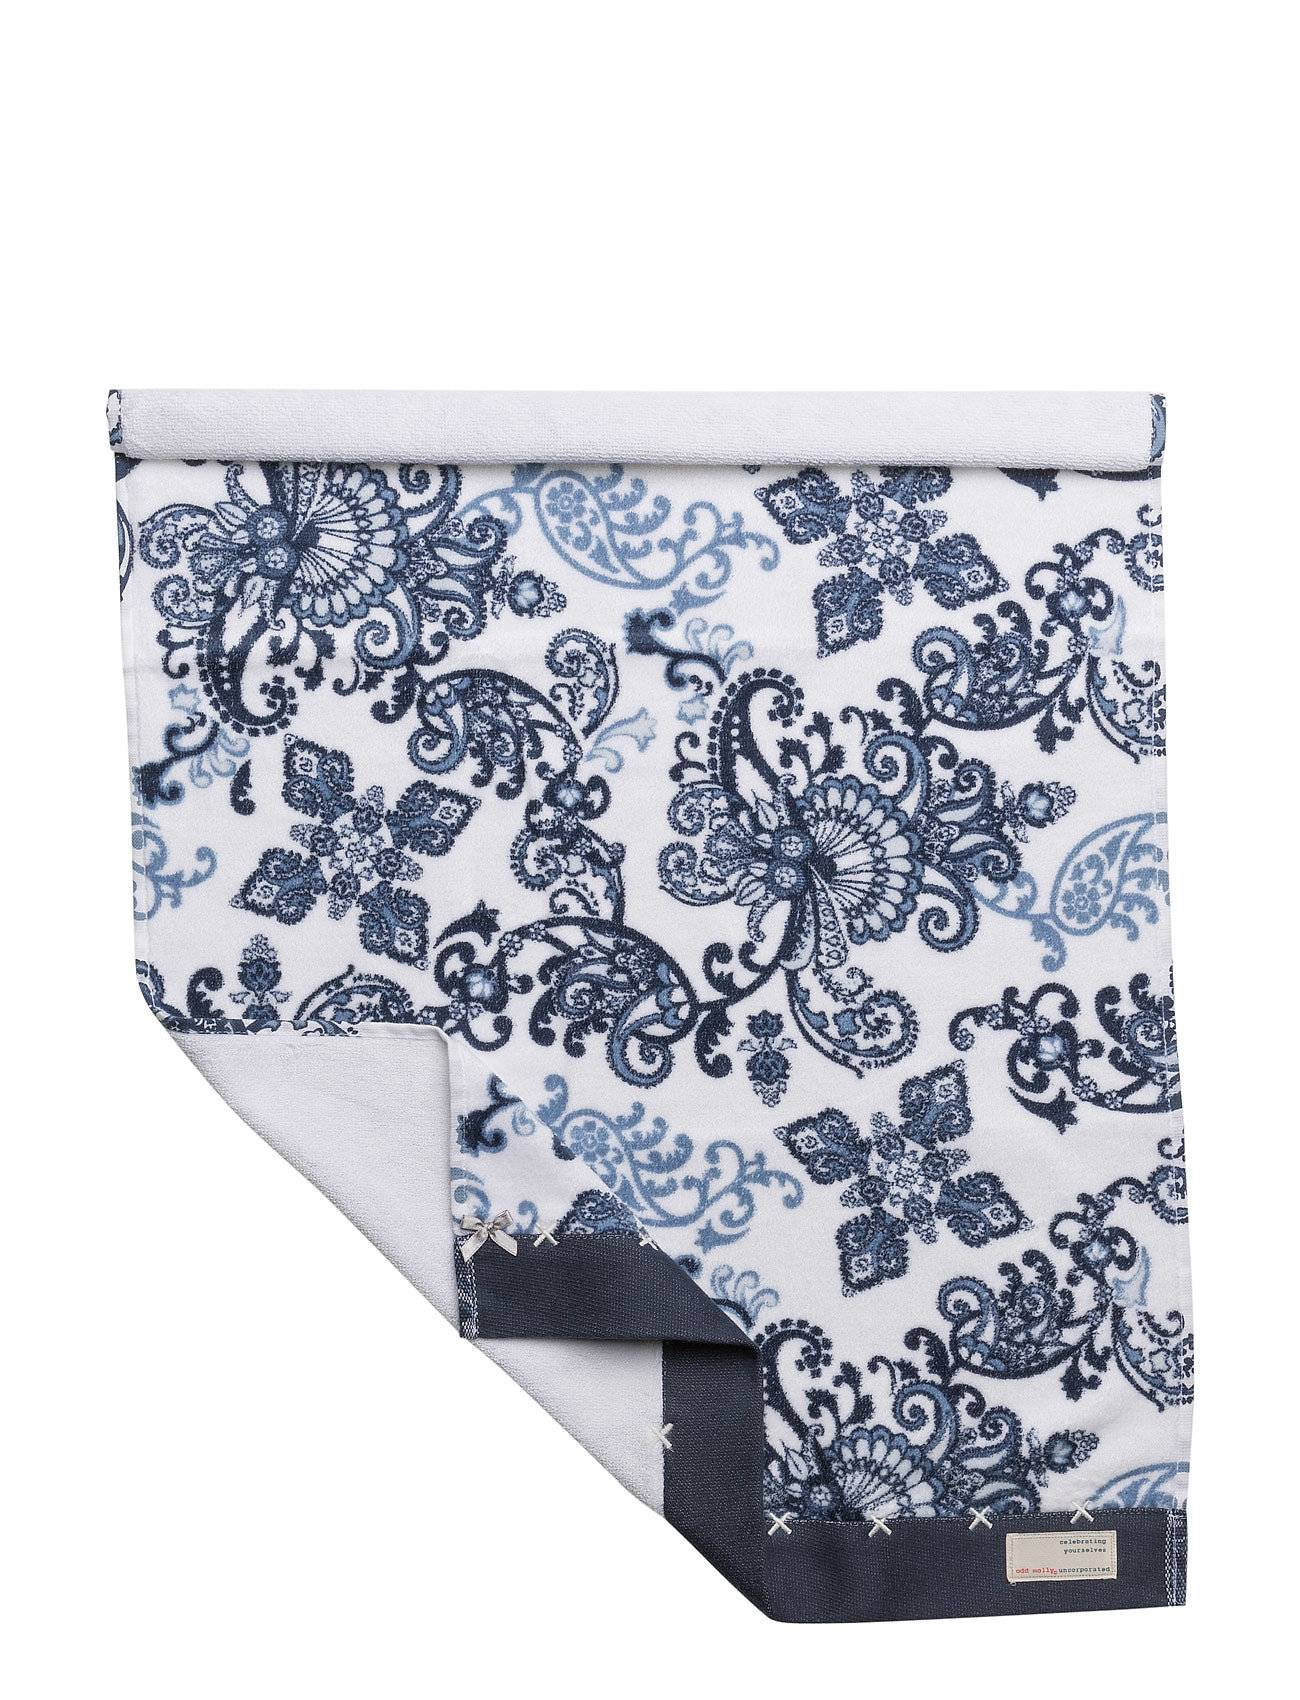 ODD MOLLY HOME Everyday Guest Towel